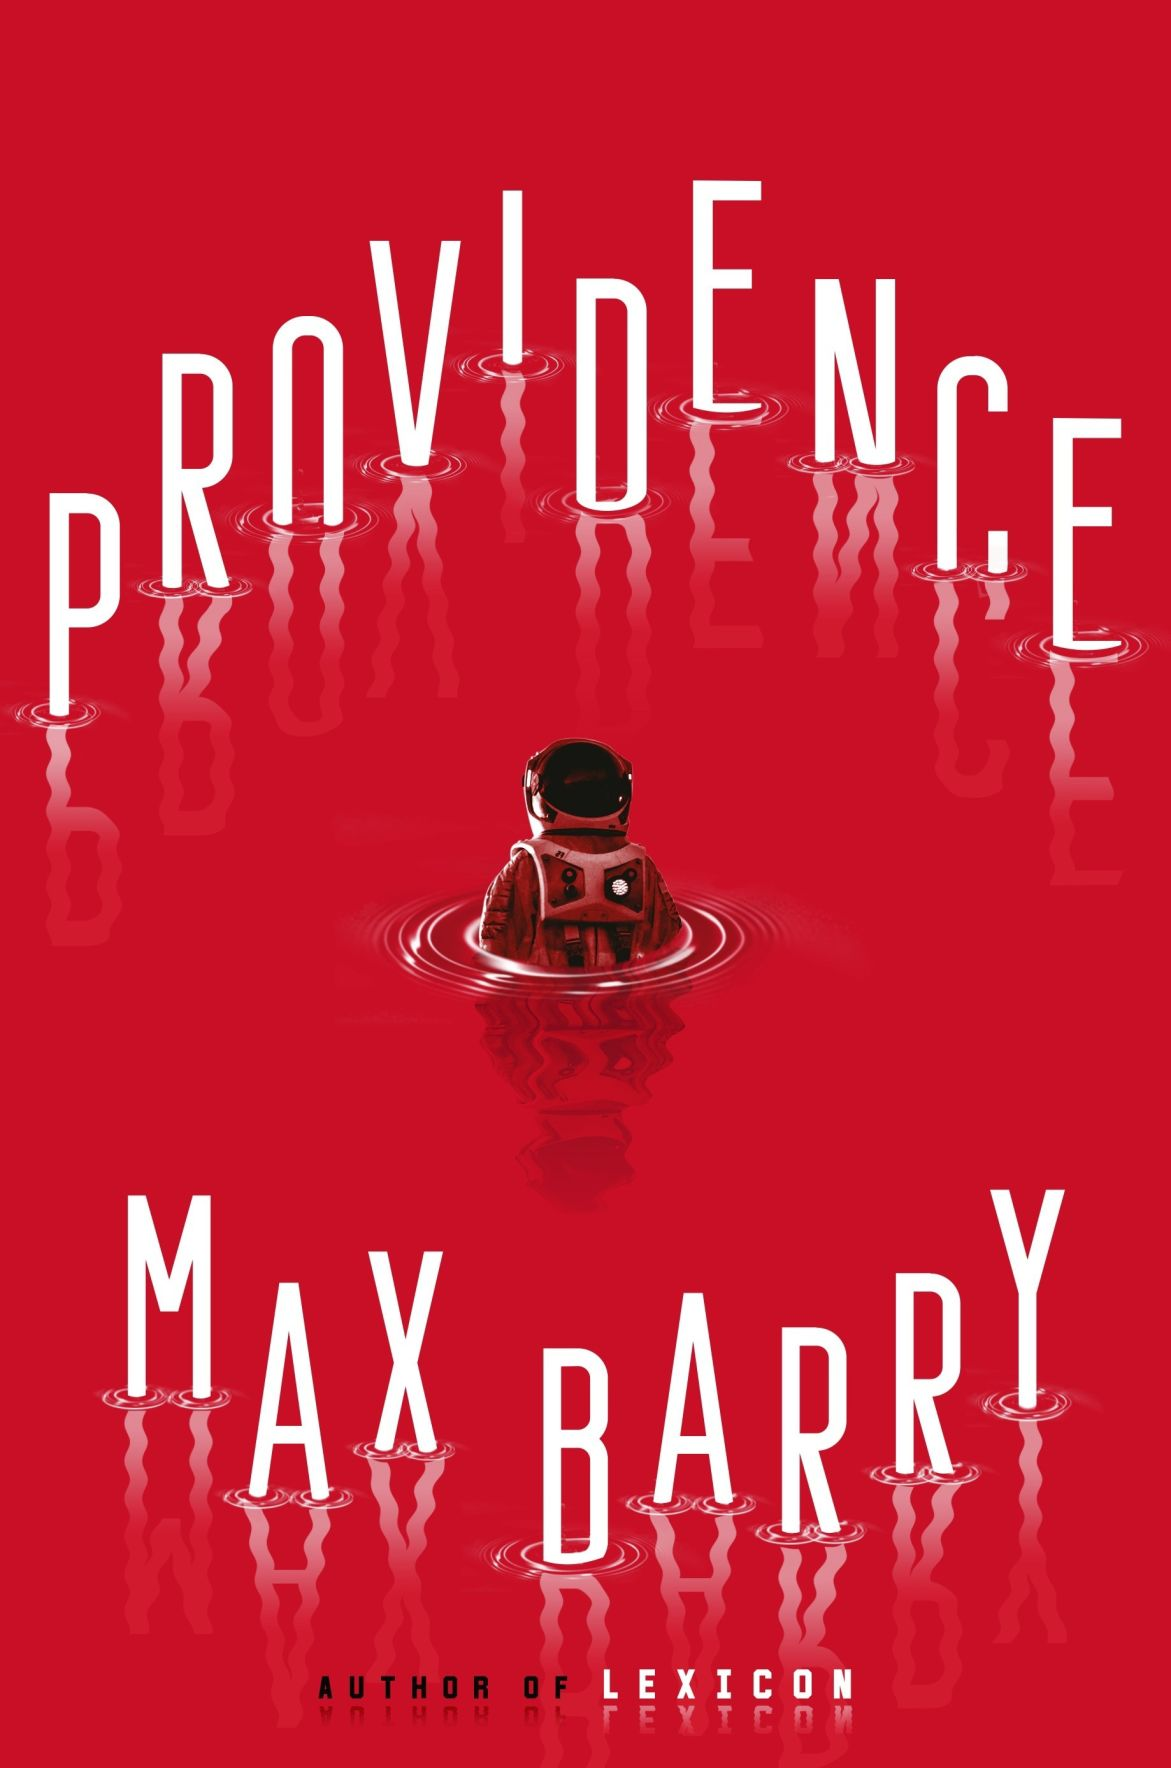 Book Review - Providence